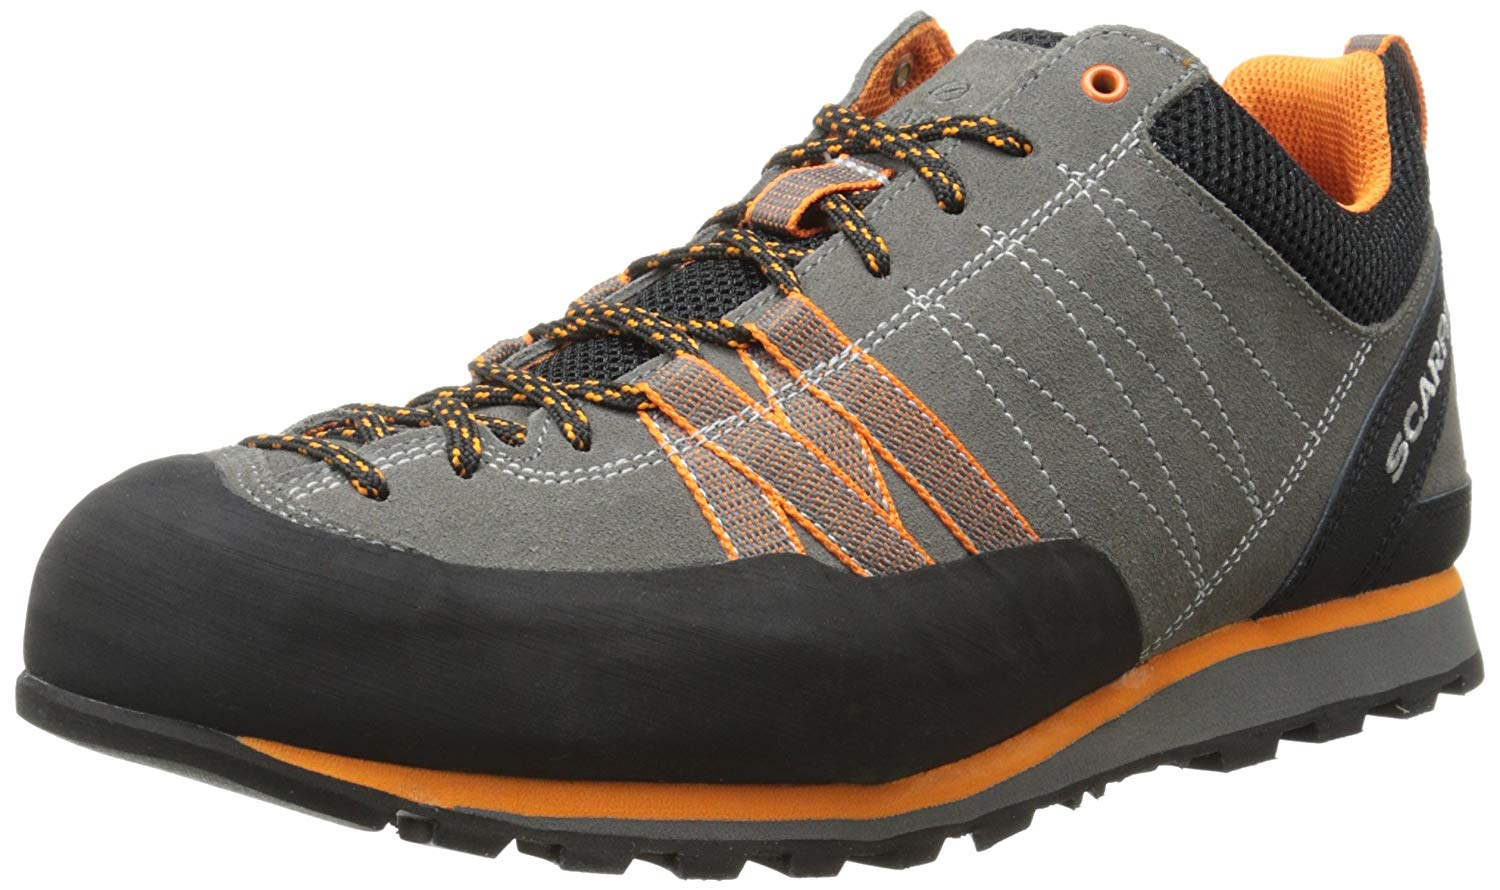 Scarpa Mens Crux Approach Shoes In Orange And Grey